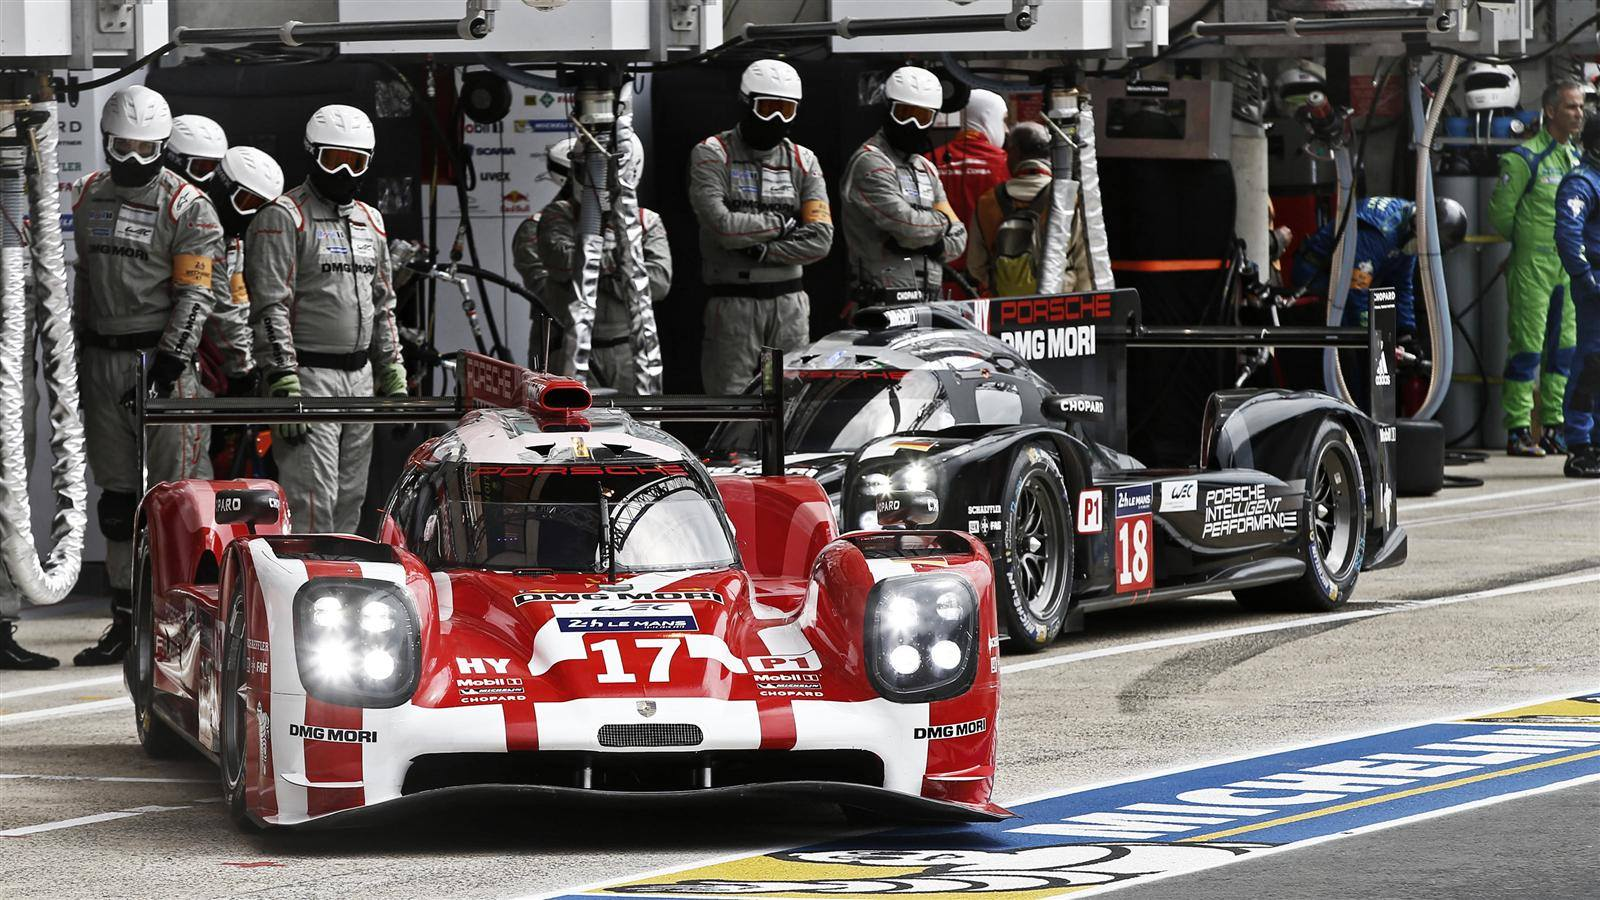 2015-24-Hours-of-Le-Mans-3-Porsche-919-Hybrids-will-start-from-first-4.jpg